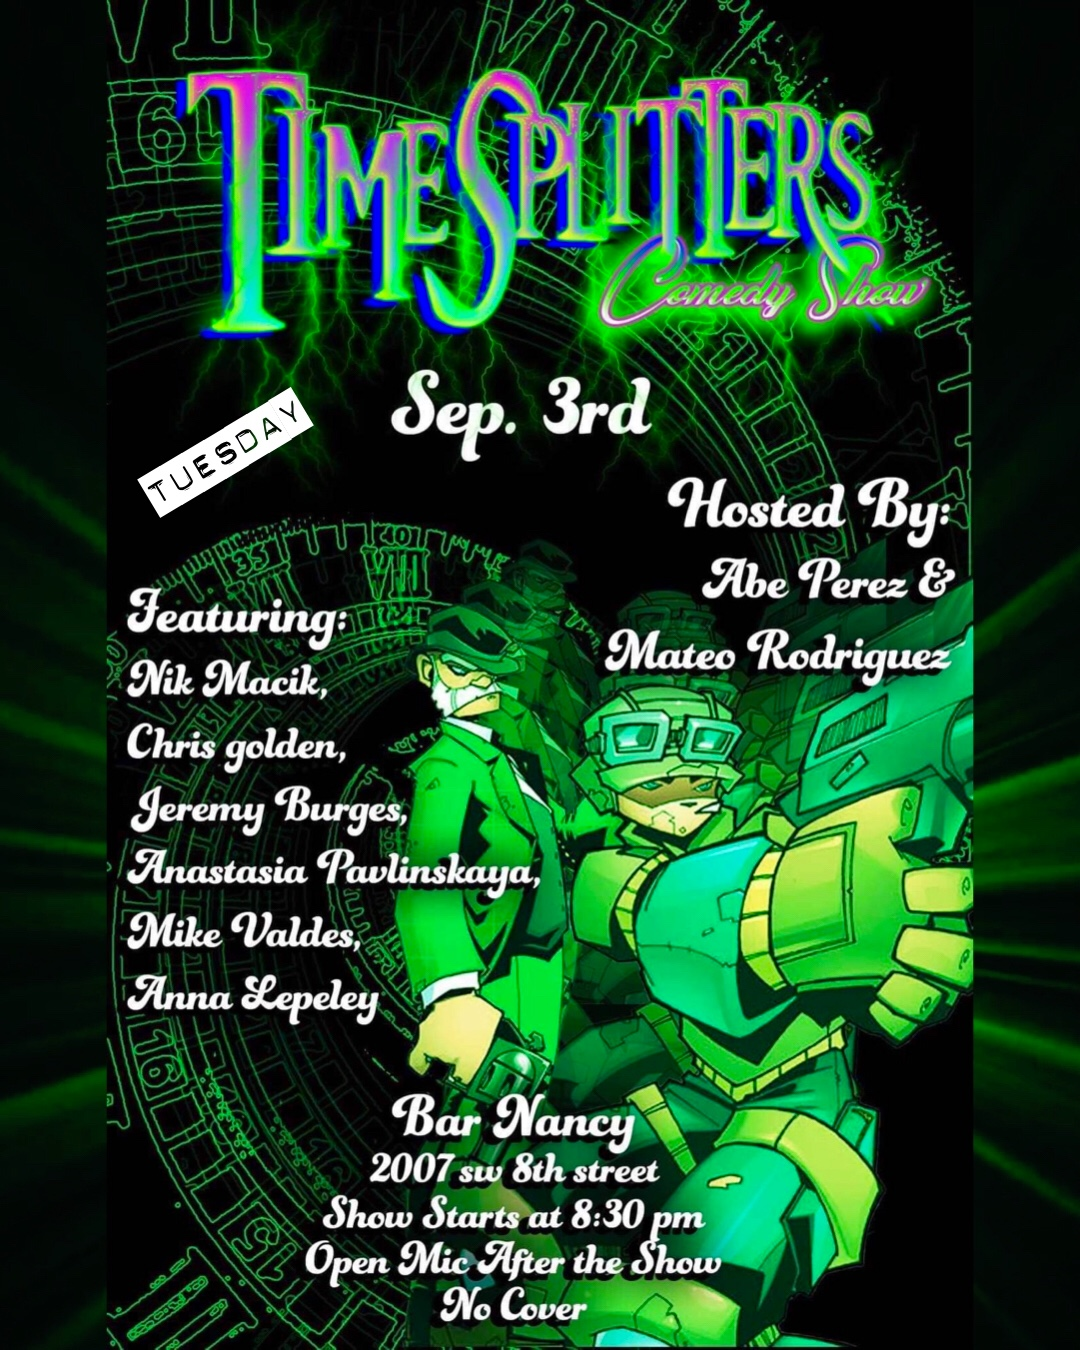 Time Splitters Comedy Show At Bar Nancy!